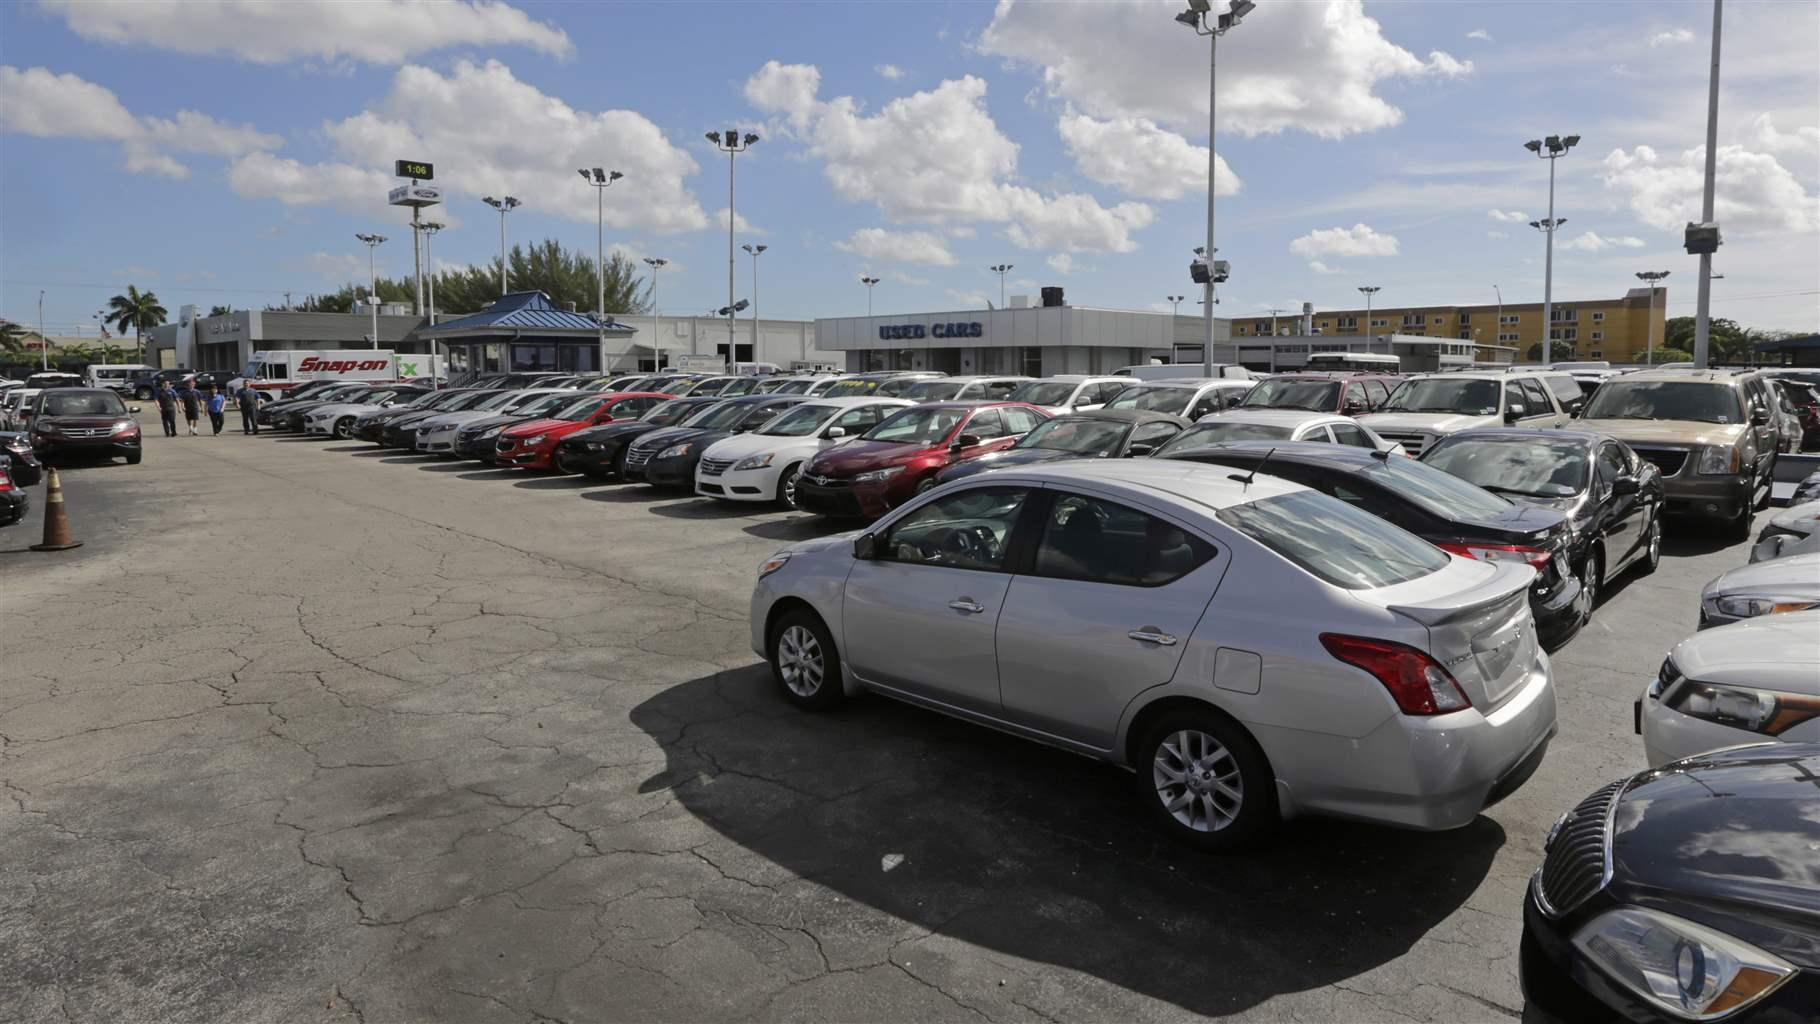 Late Payment? A 'Kill Switch' Can Strand You and Your Car | The Pew